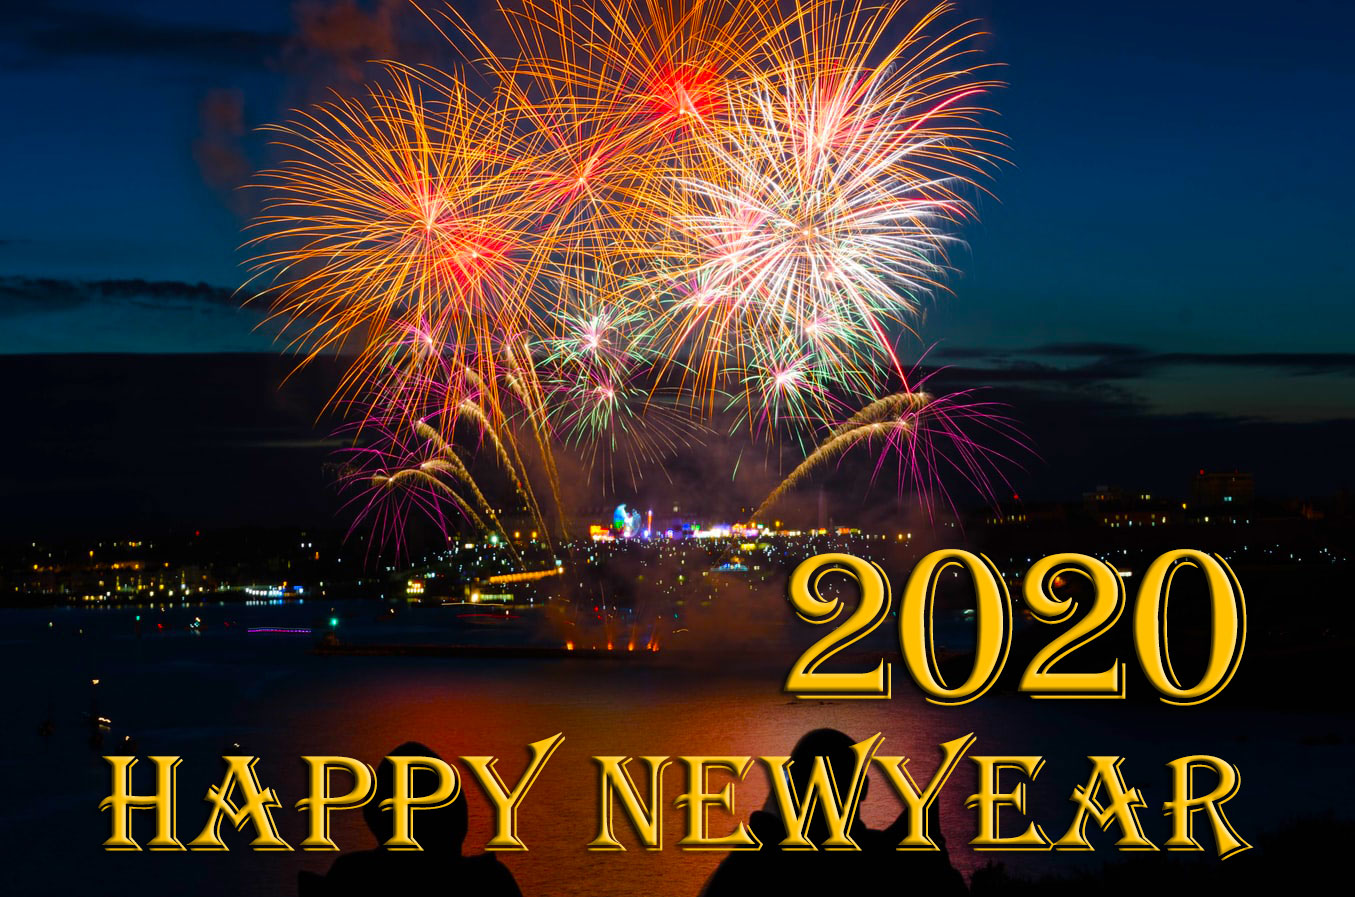 happy new year 2020 messages